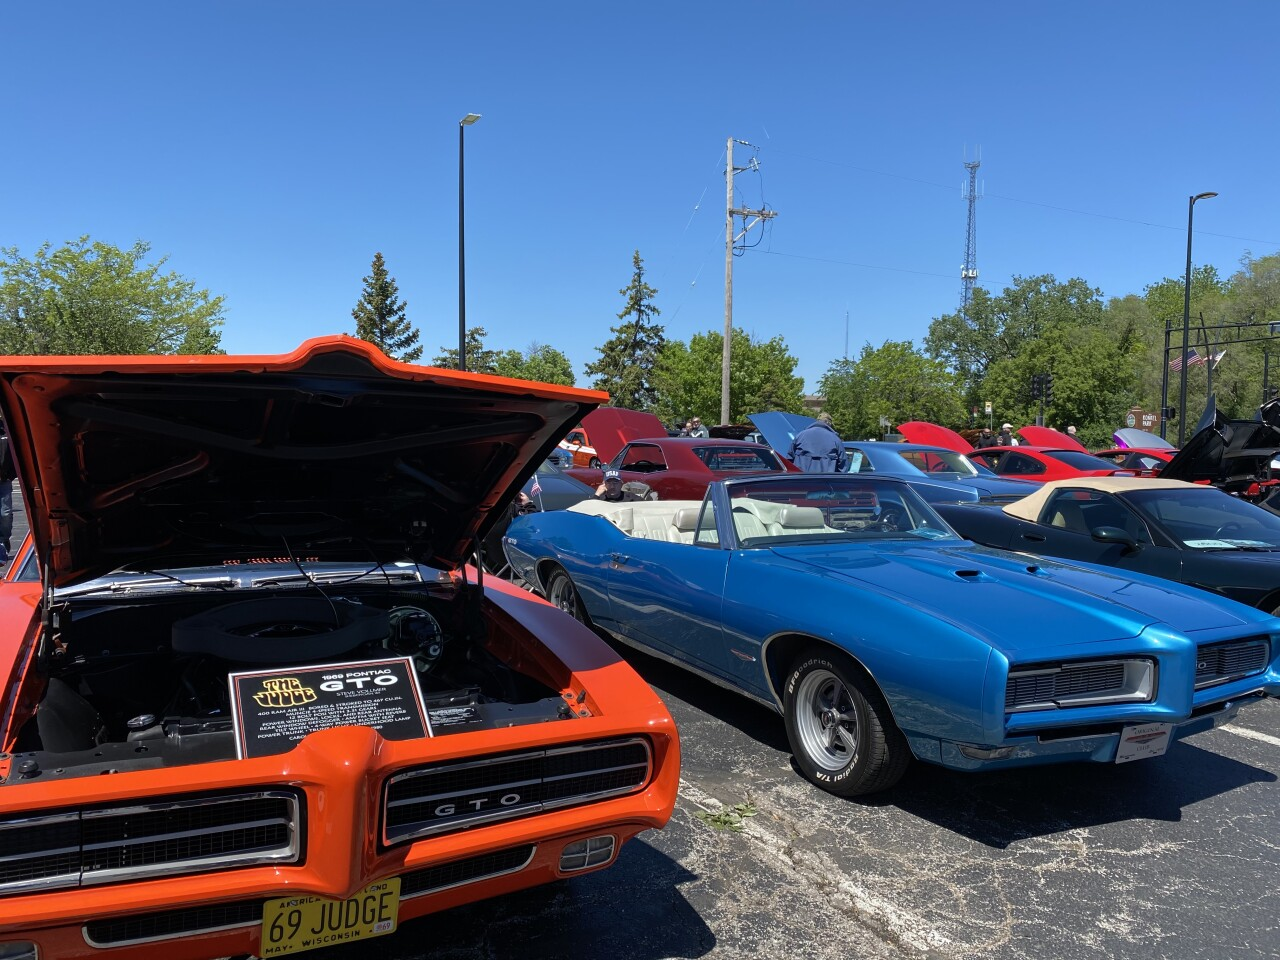 Some of the cars at the classic car show on Saturday afternoon.